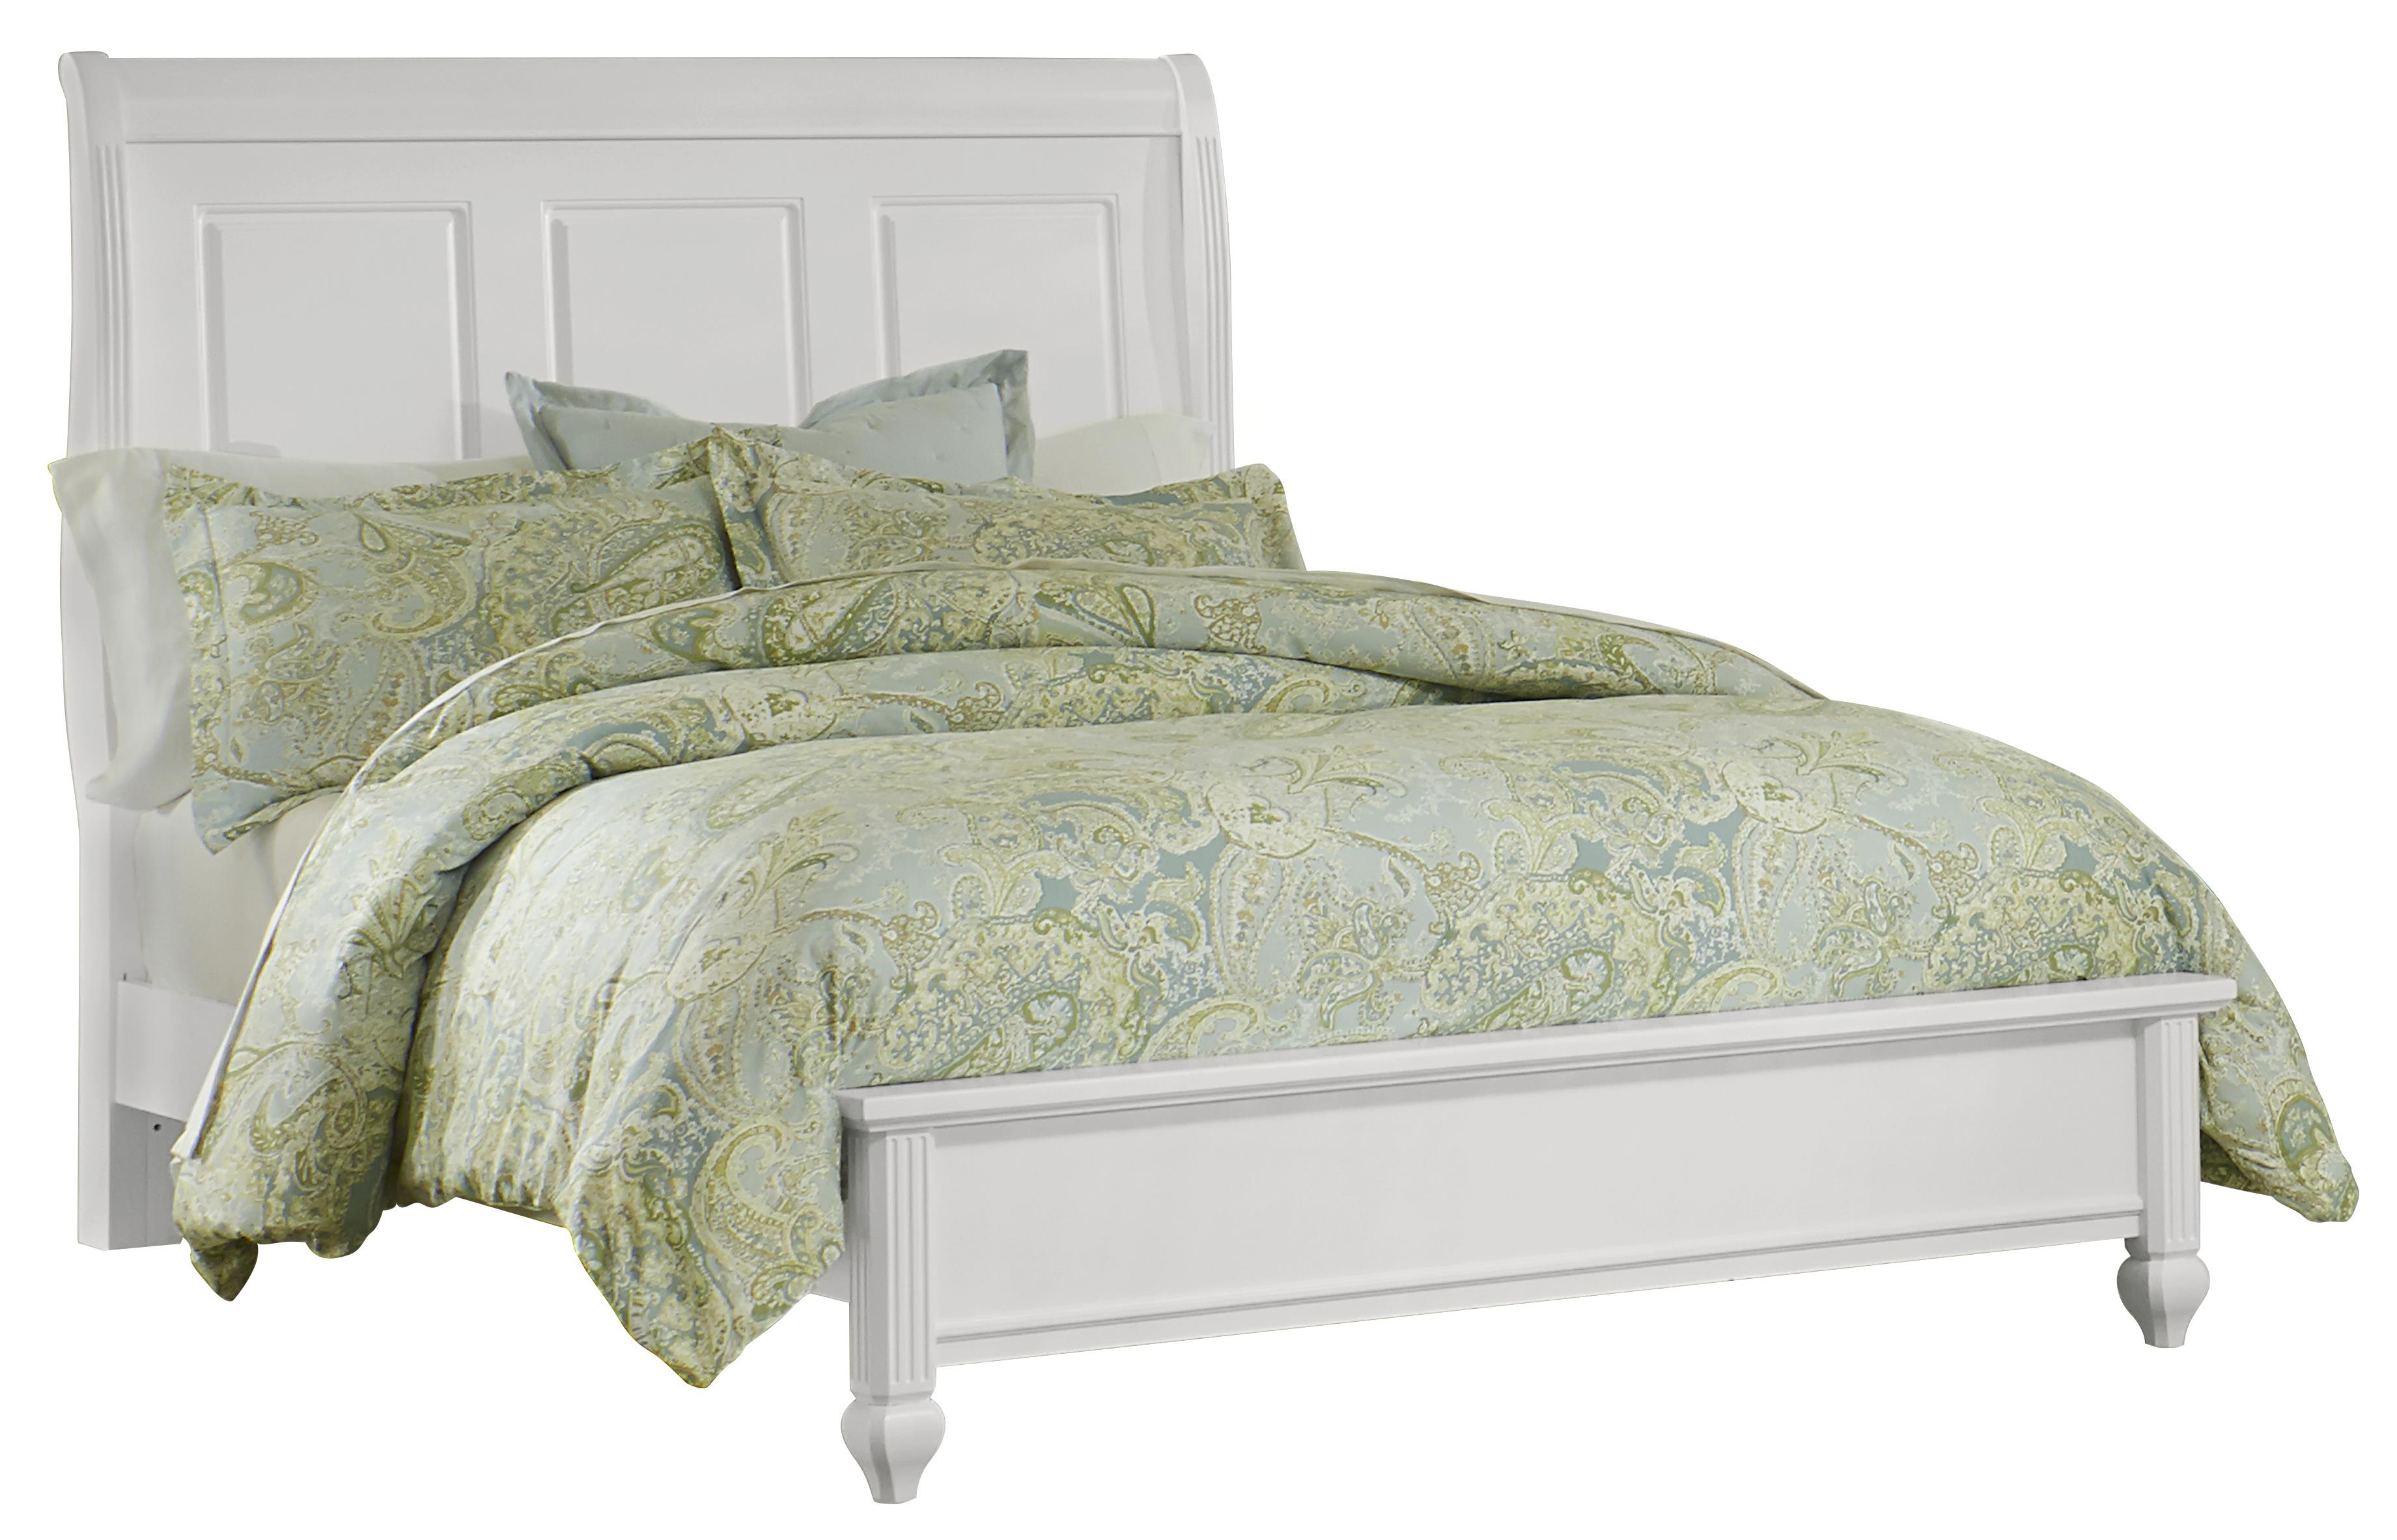 Vaughan Bassett French Market Queen Bed w/ Sleigh Headboard & Low Ftbd - Item Number: 384-551+355+922